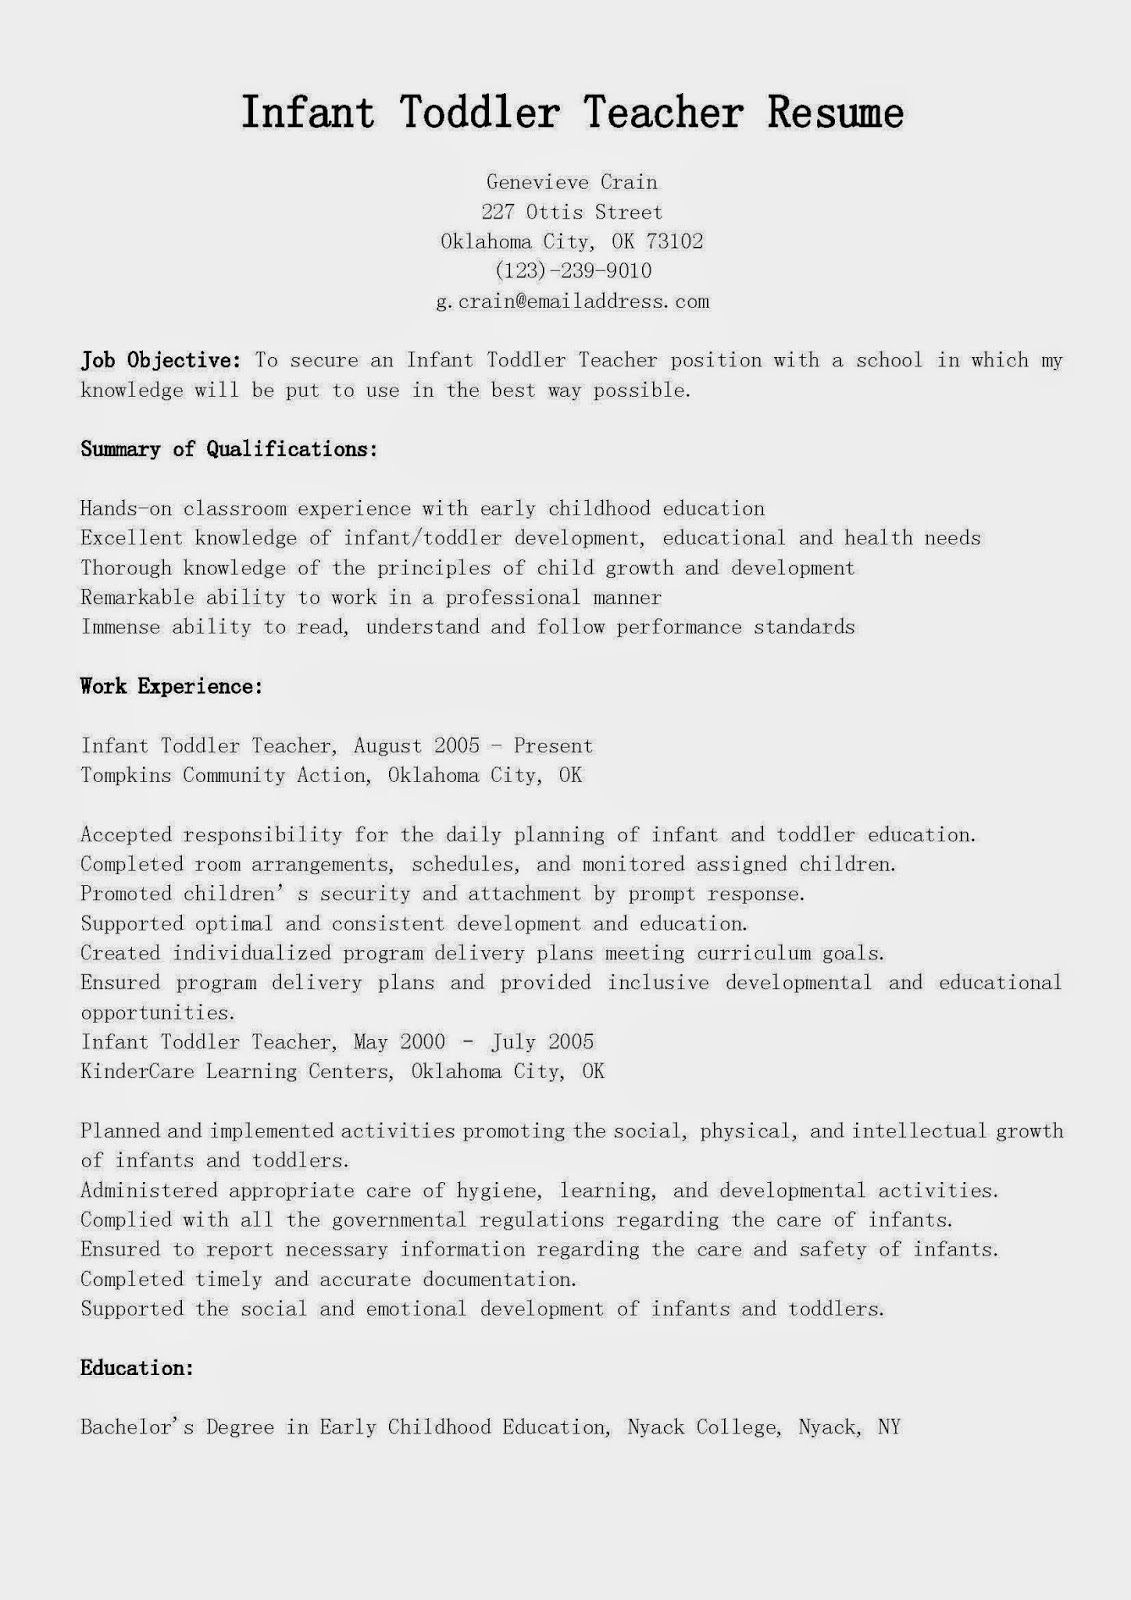 sample resume for infant teacher resume example sample resume for infant teacher sample infant toddler teacher resume sample livecareer resume samples infant toddler